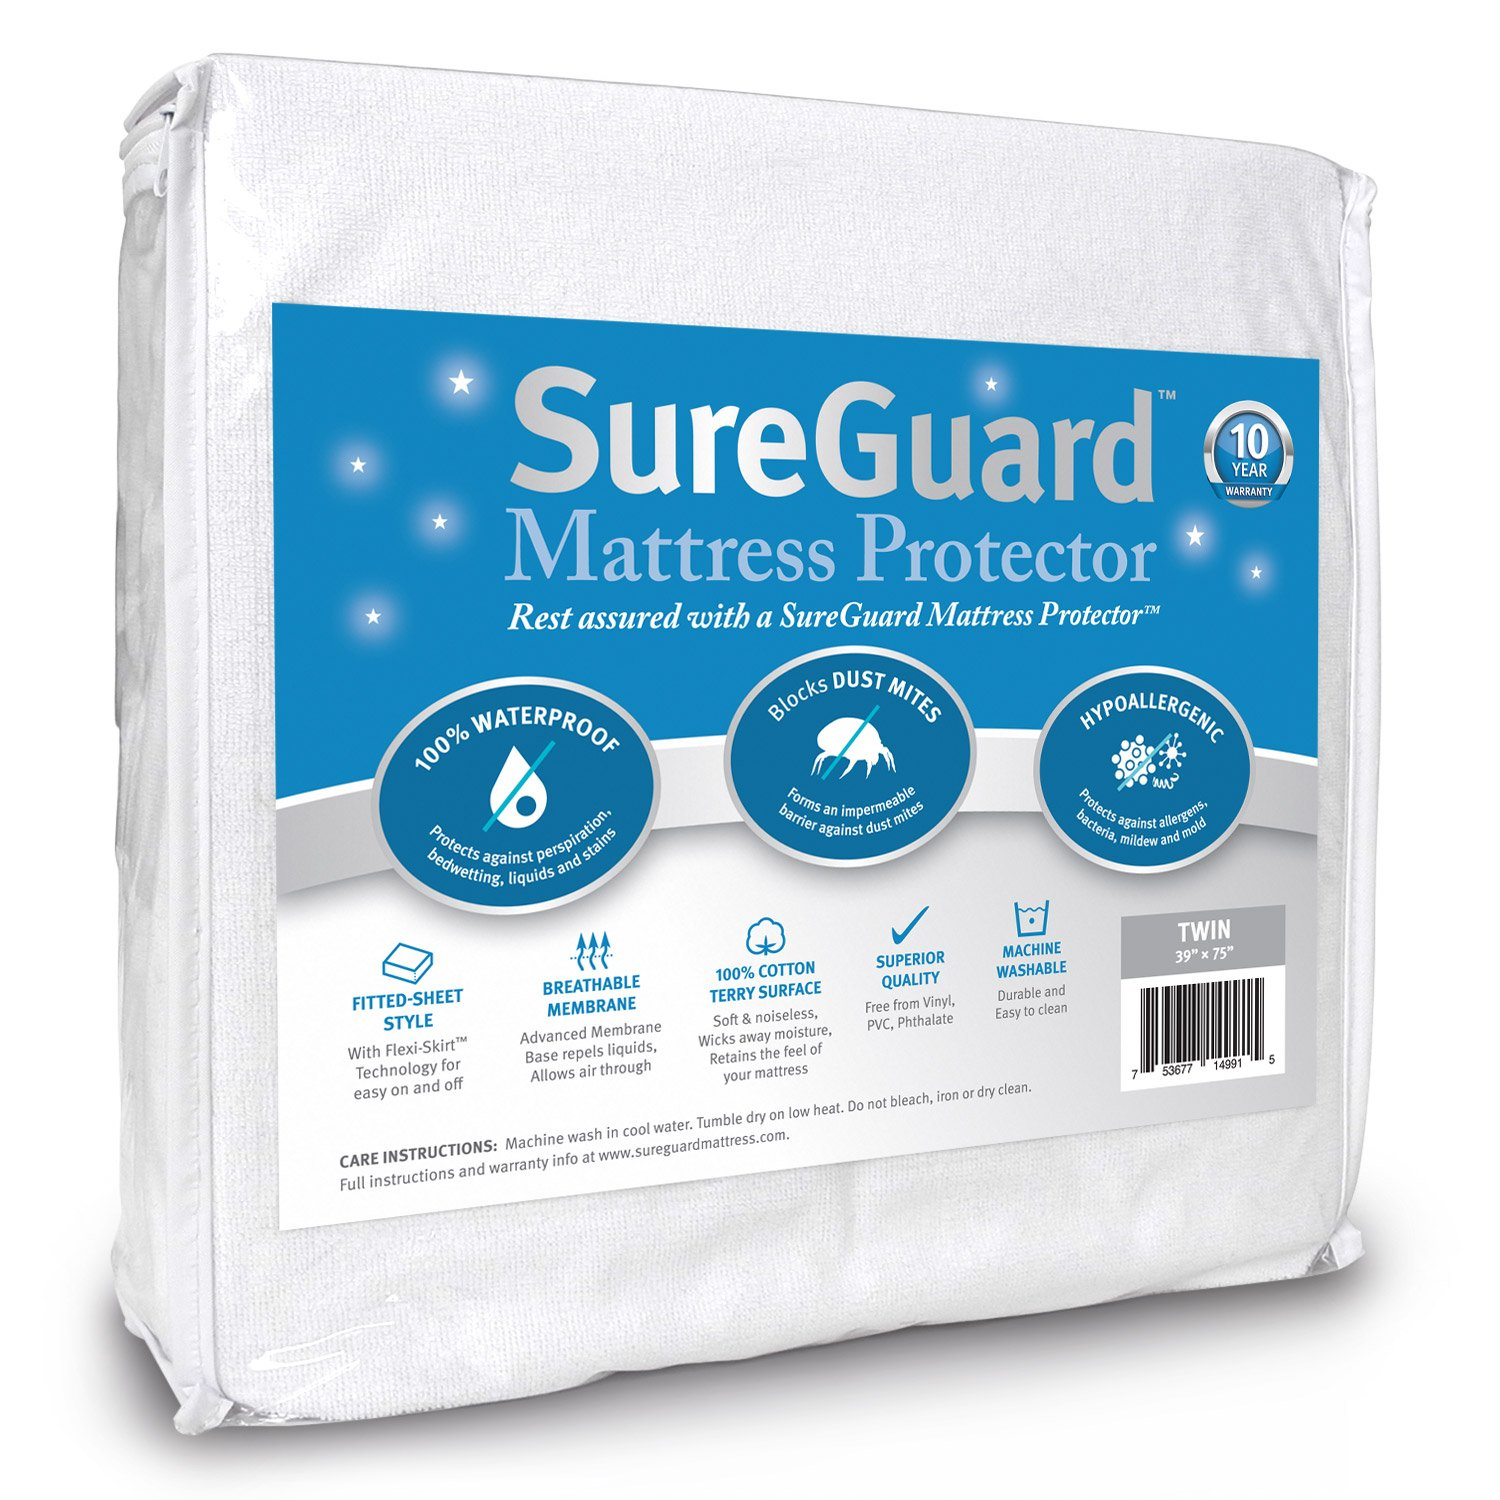 SureGuard Mattress Protectors Twin Size 100% Waterproof, Hypoallergenic - Premium Fitted Cotton Terry Cover - 10 Year Warranty